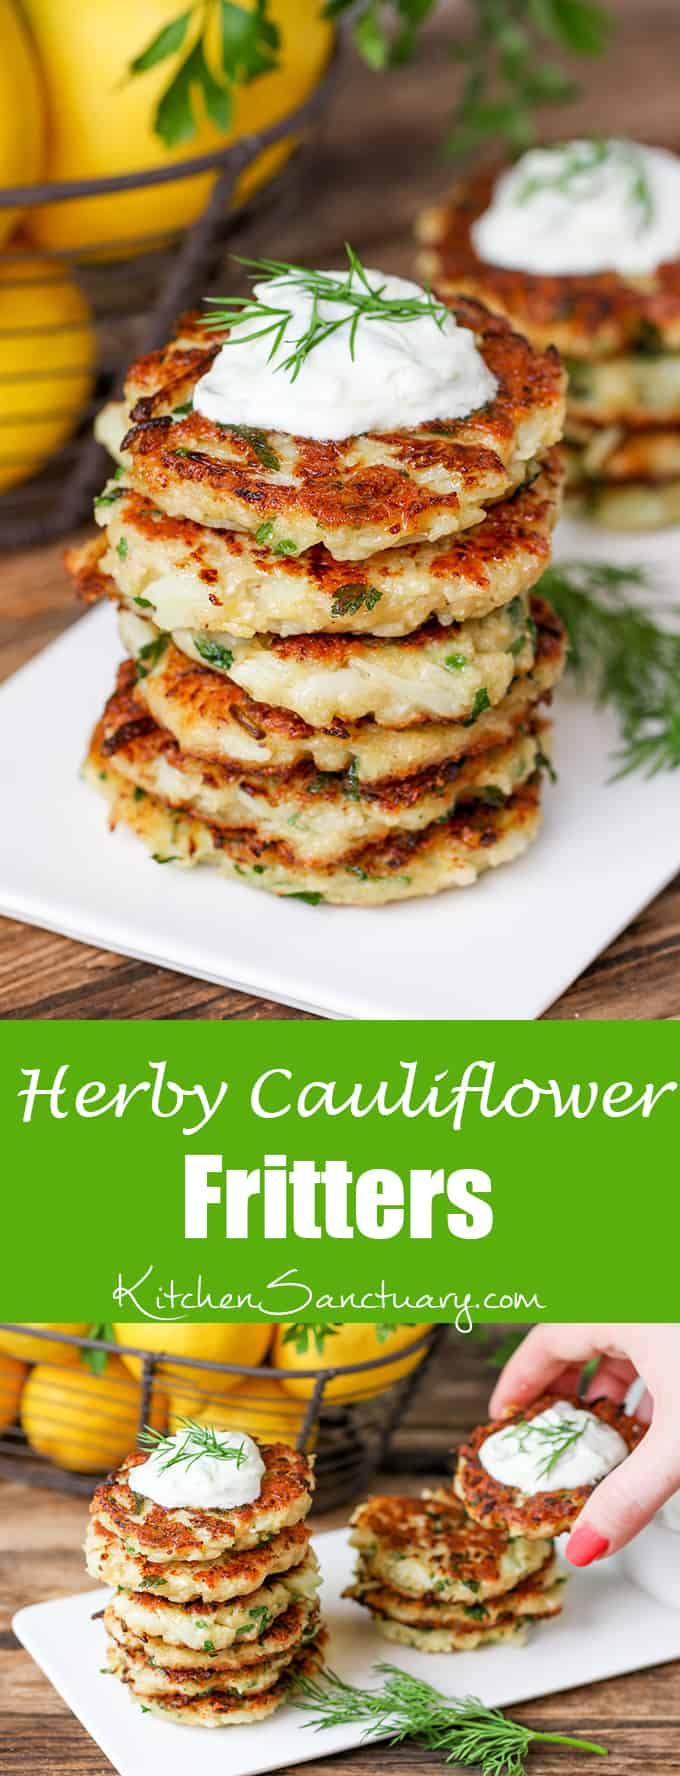 Cauliflower Fritters with Homemade Tzatziki - a lunch with a bit of a difference!